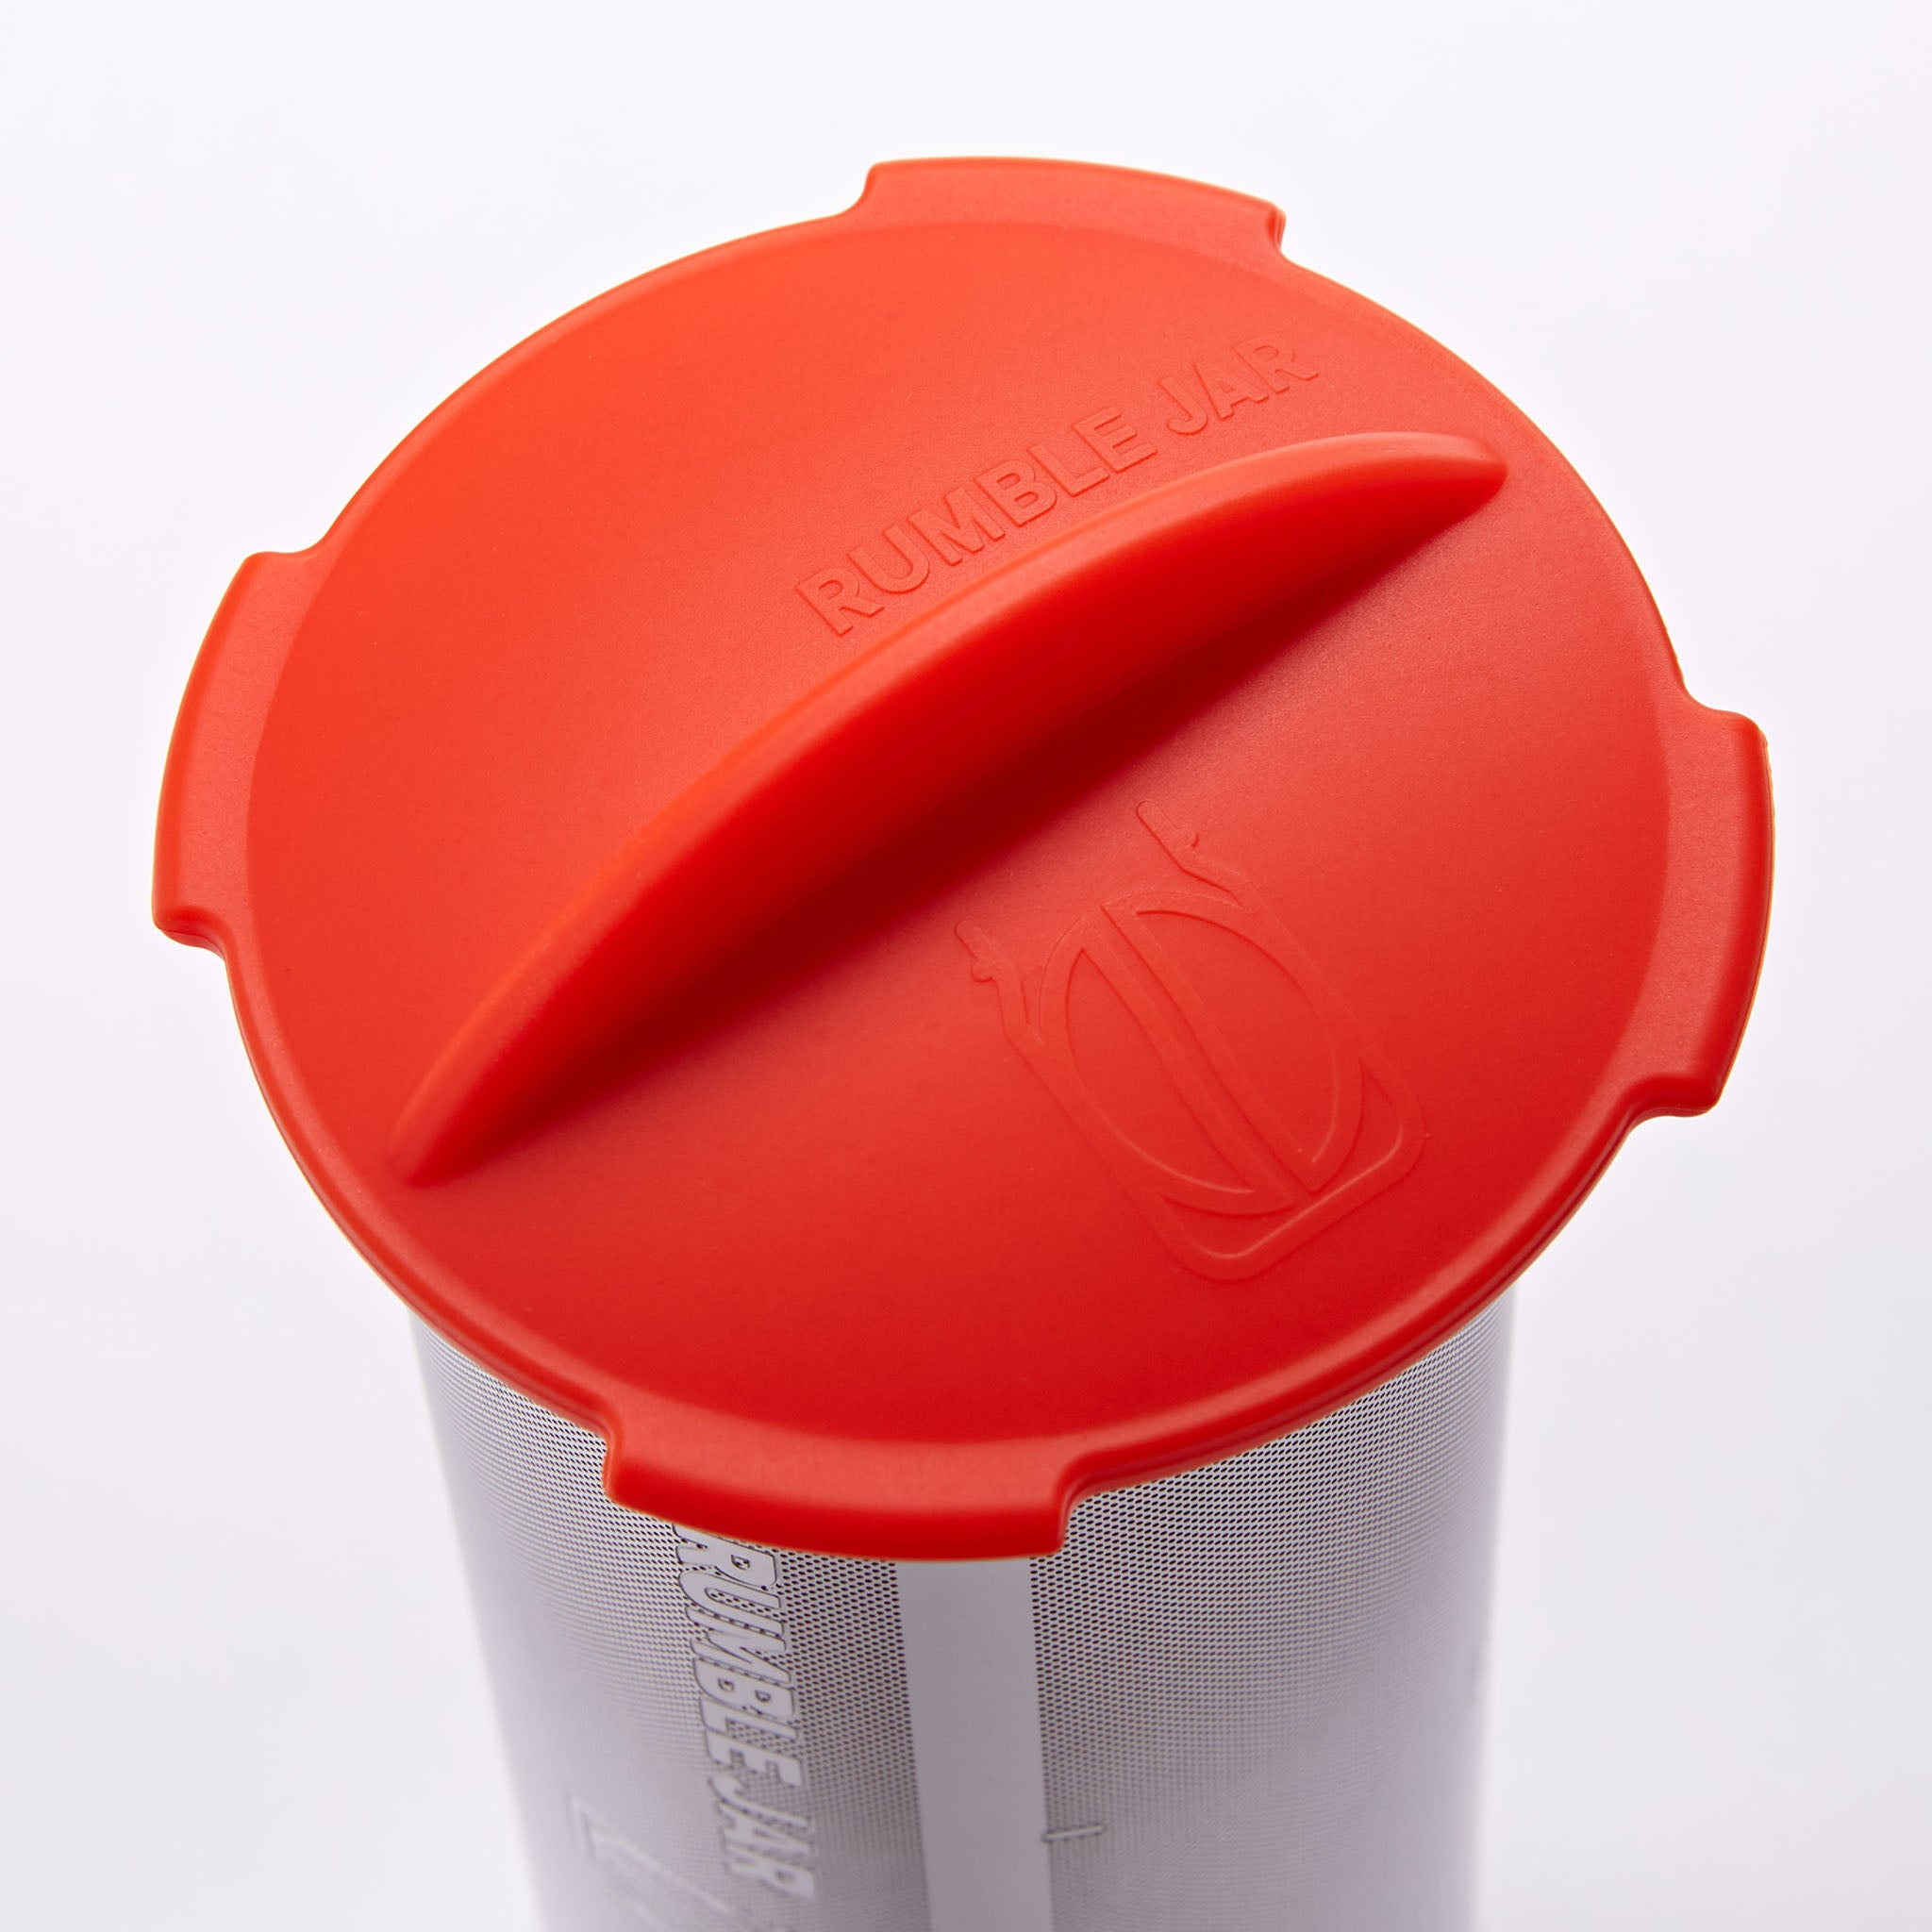 Rumble Jar's silicone cap in the orangey-red color